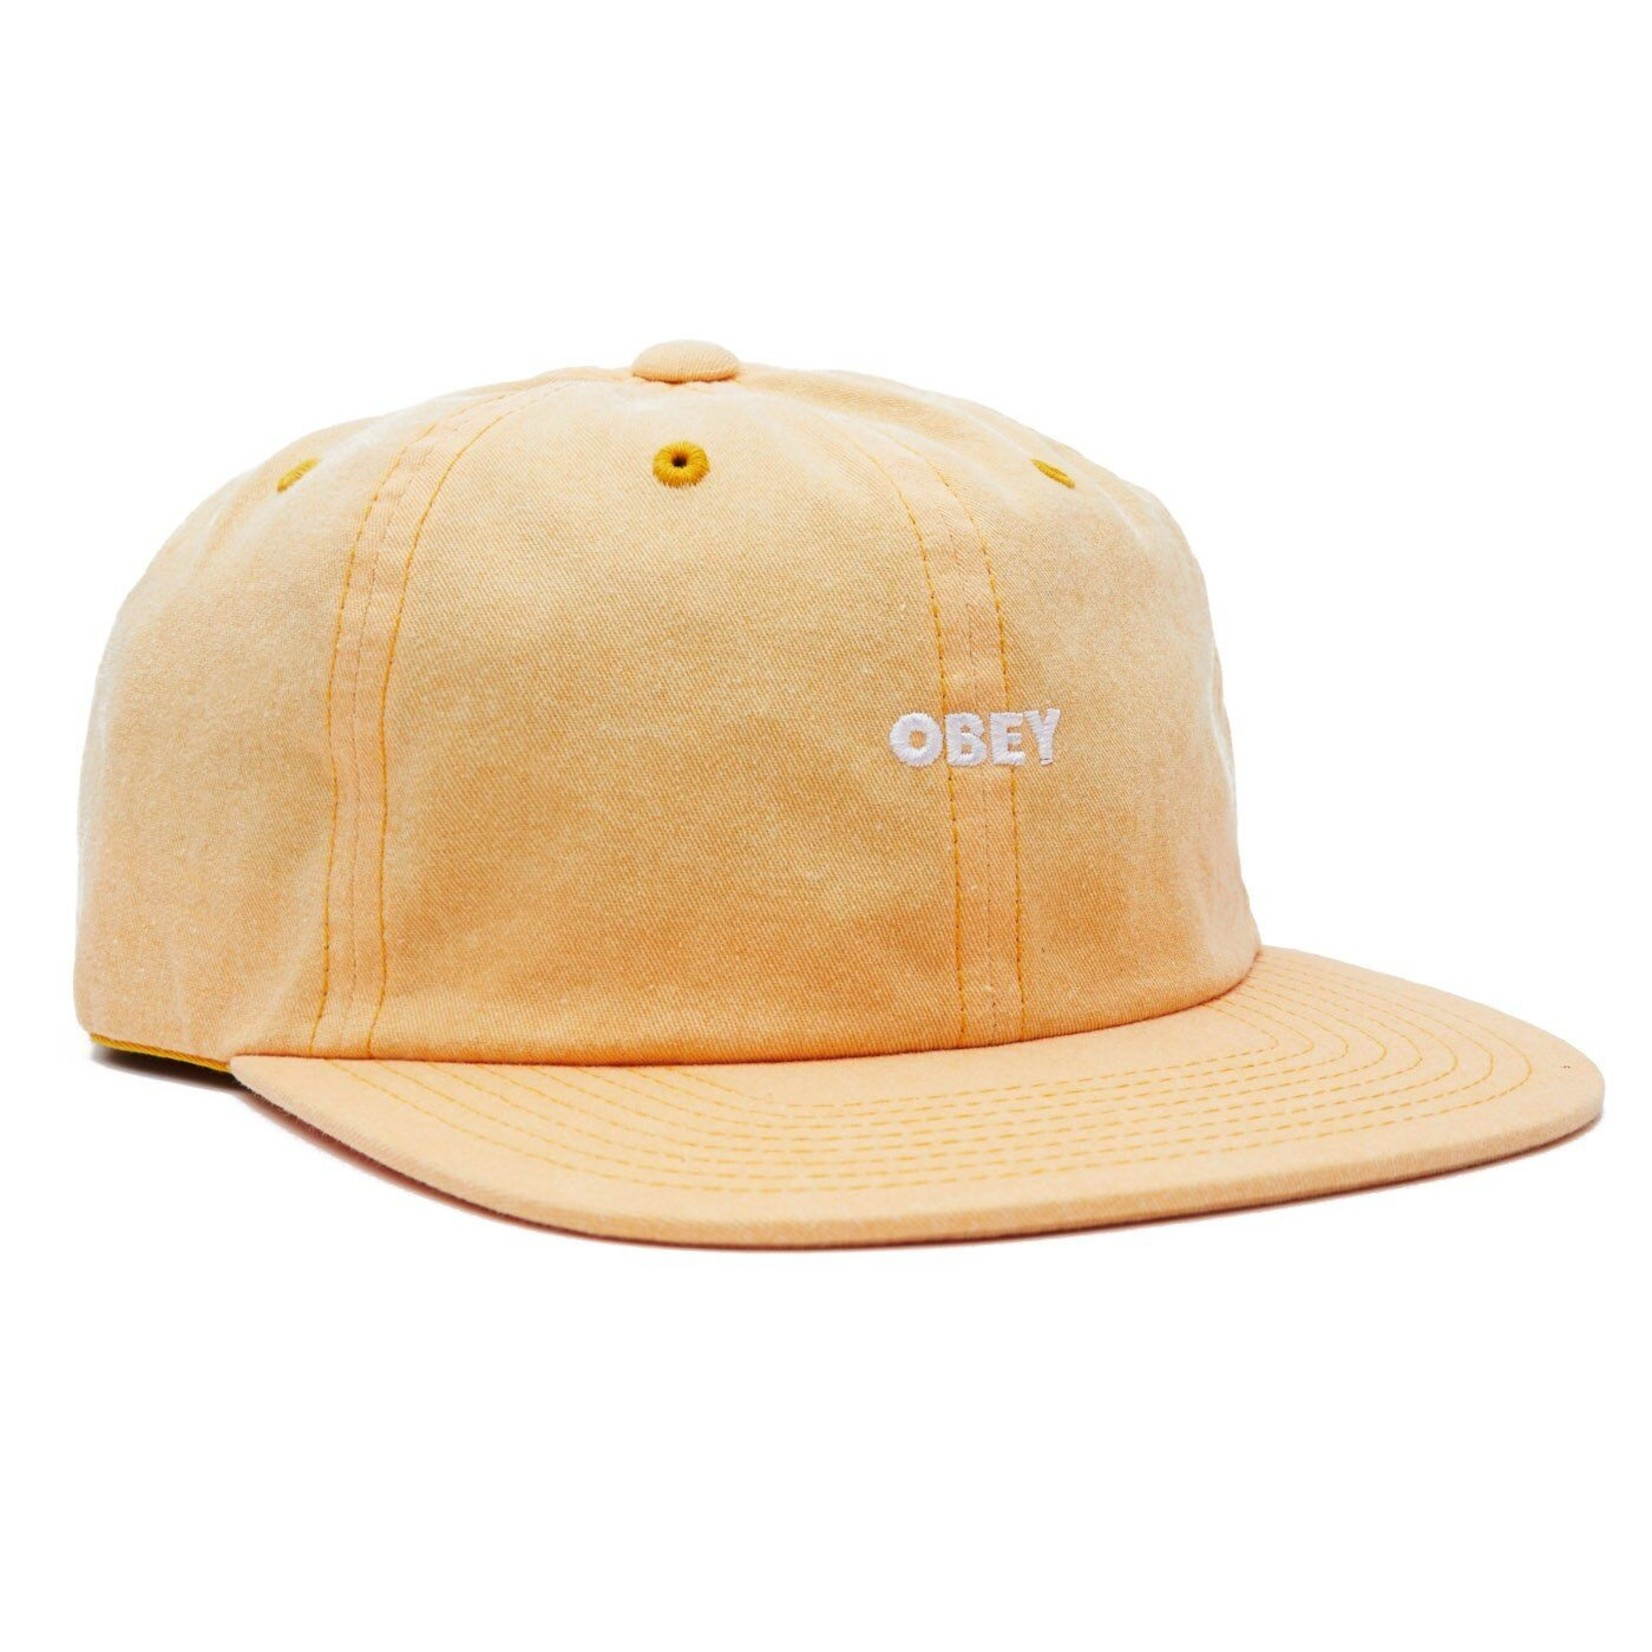 Obey Obey Pigment 6 Panel Strapback